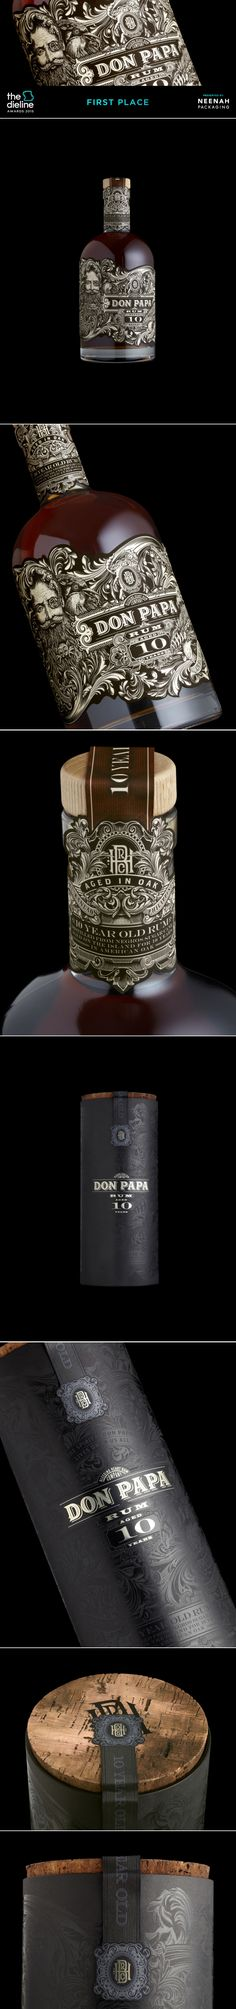 The Dieline Awards 2015: 1st Place Spirits- Don Papa 10 Year Old — The Dieline   Packaging & Branding Design & Innovation News